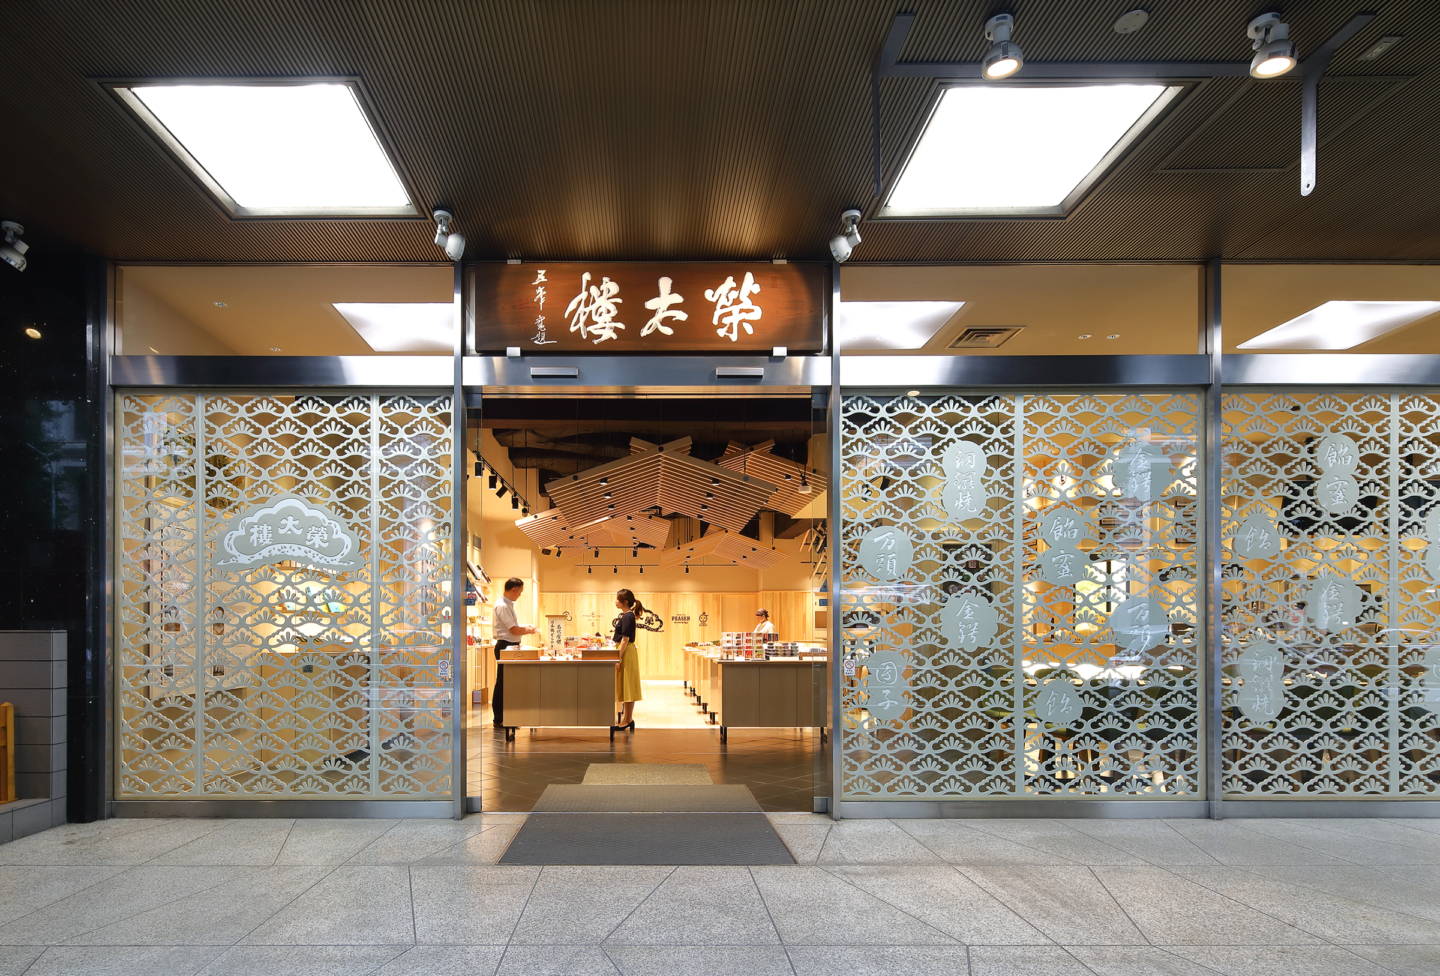 【Eitaro Sohonpo】The Eitaro Sohonpo Main Store reopens after renovations on August 1, 2020